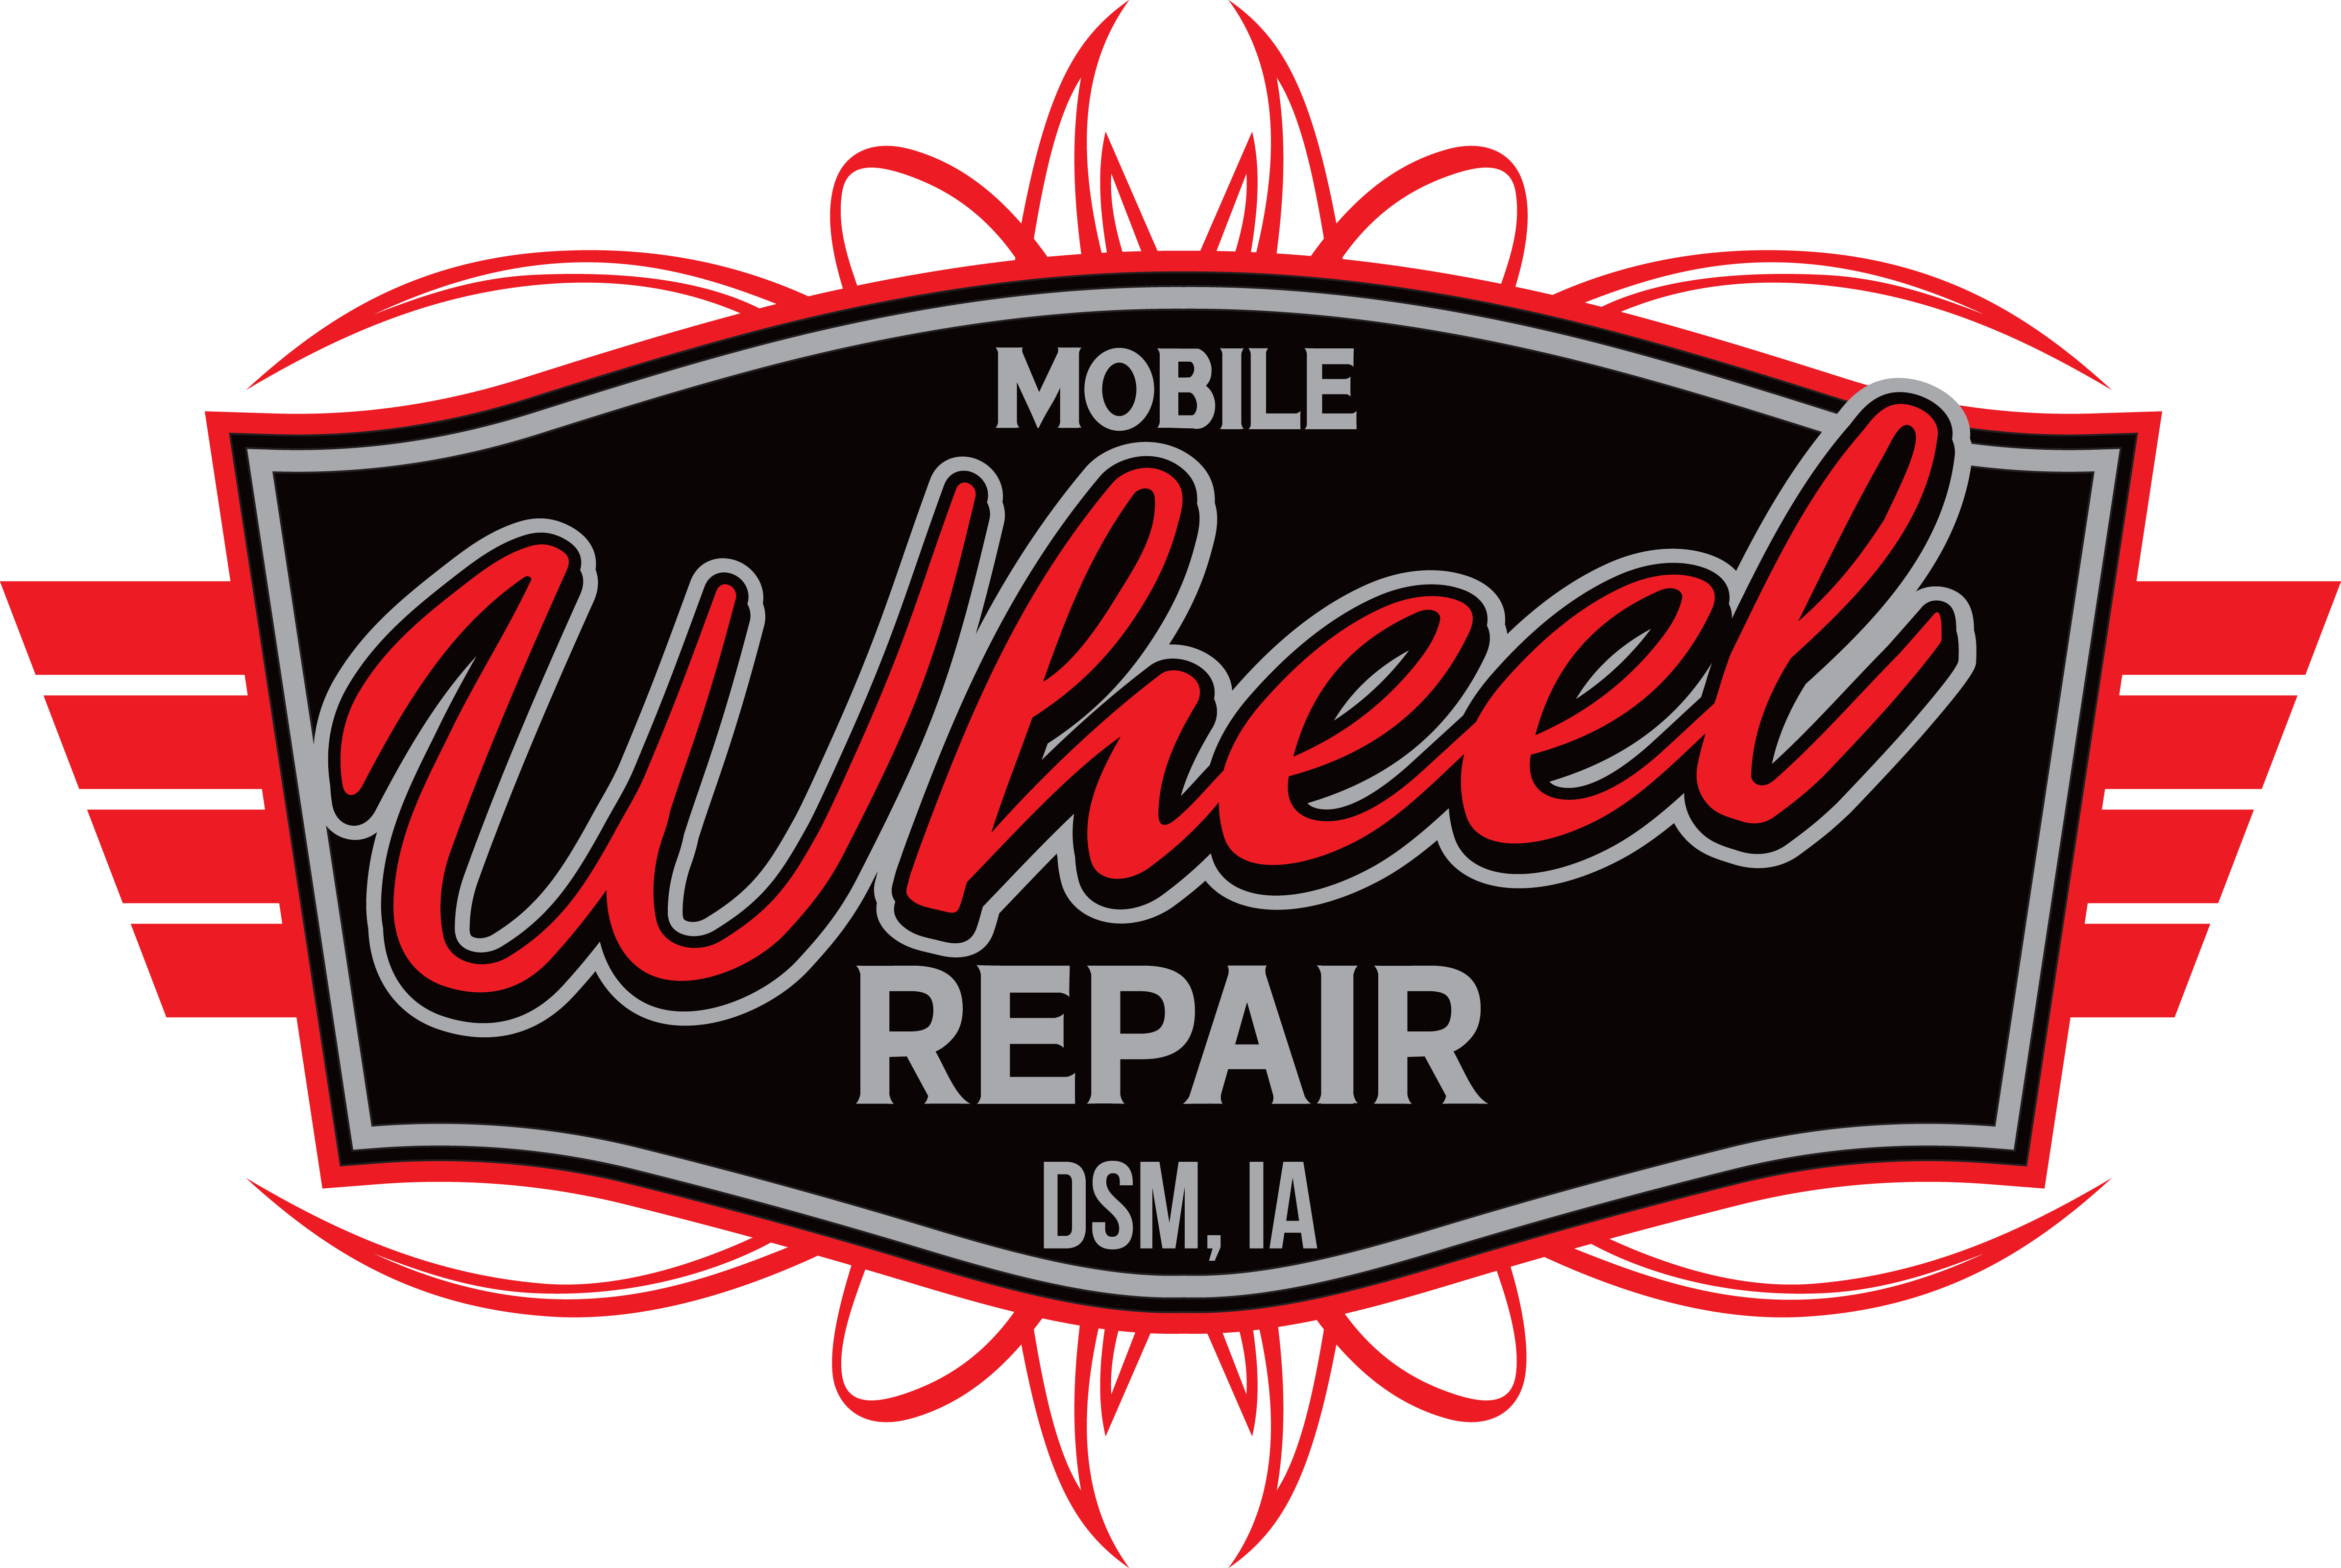 DSM Mobile Wheel Repair